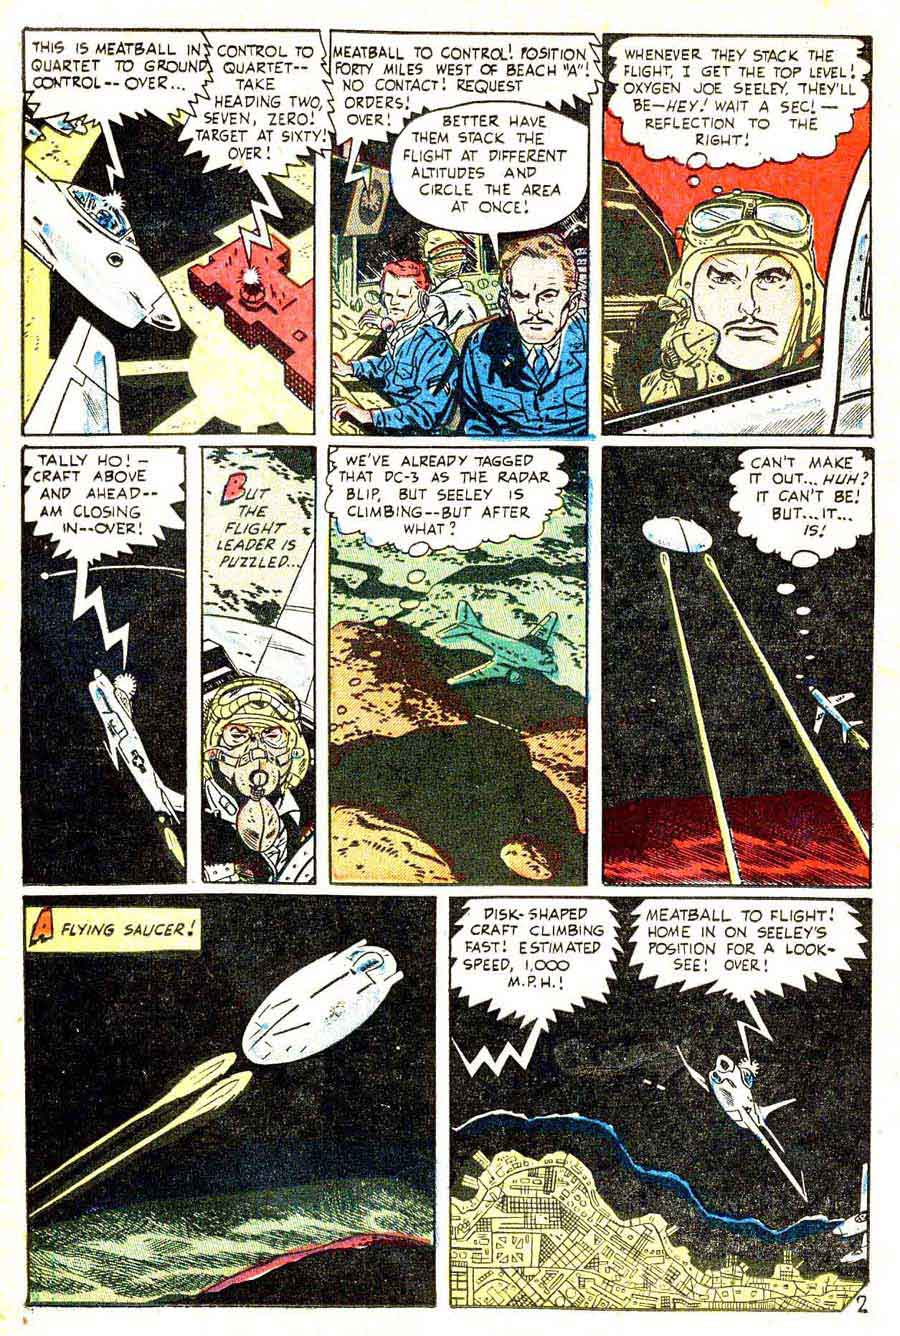 Jet Fighters v1 #7 standard war comic book page art by Alex Toth